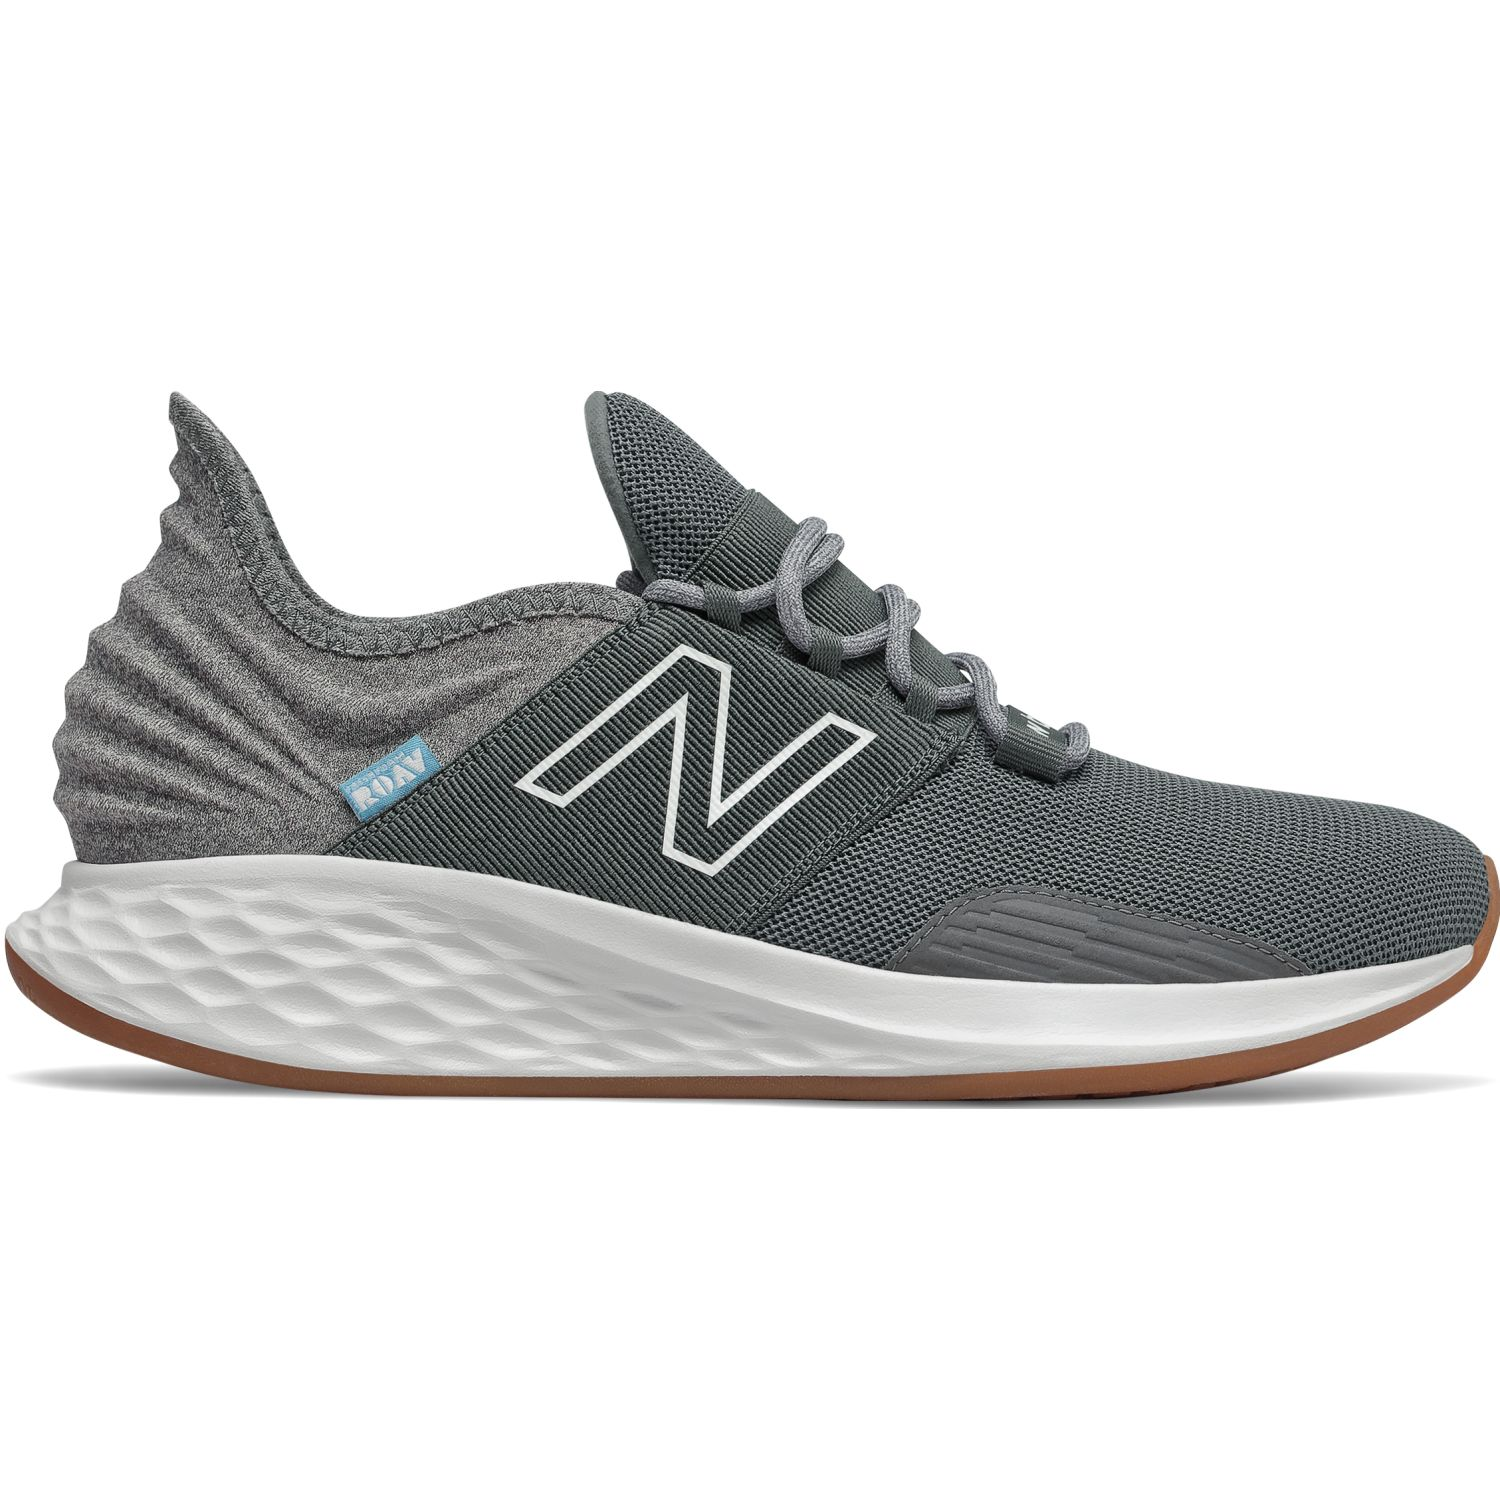 New Balance roav Gris / blanco Trail Running